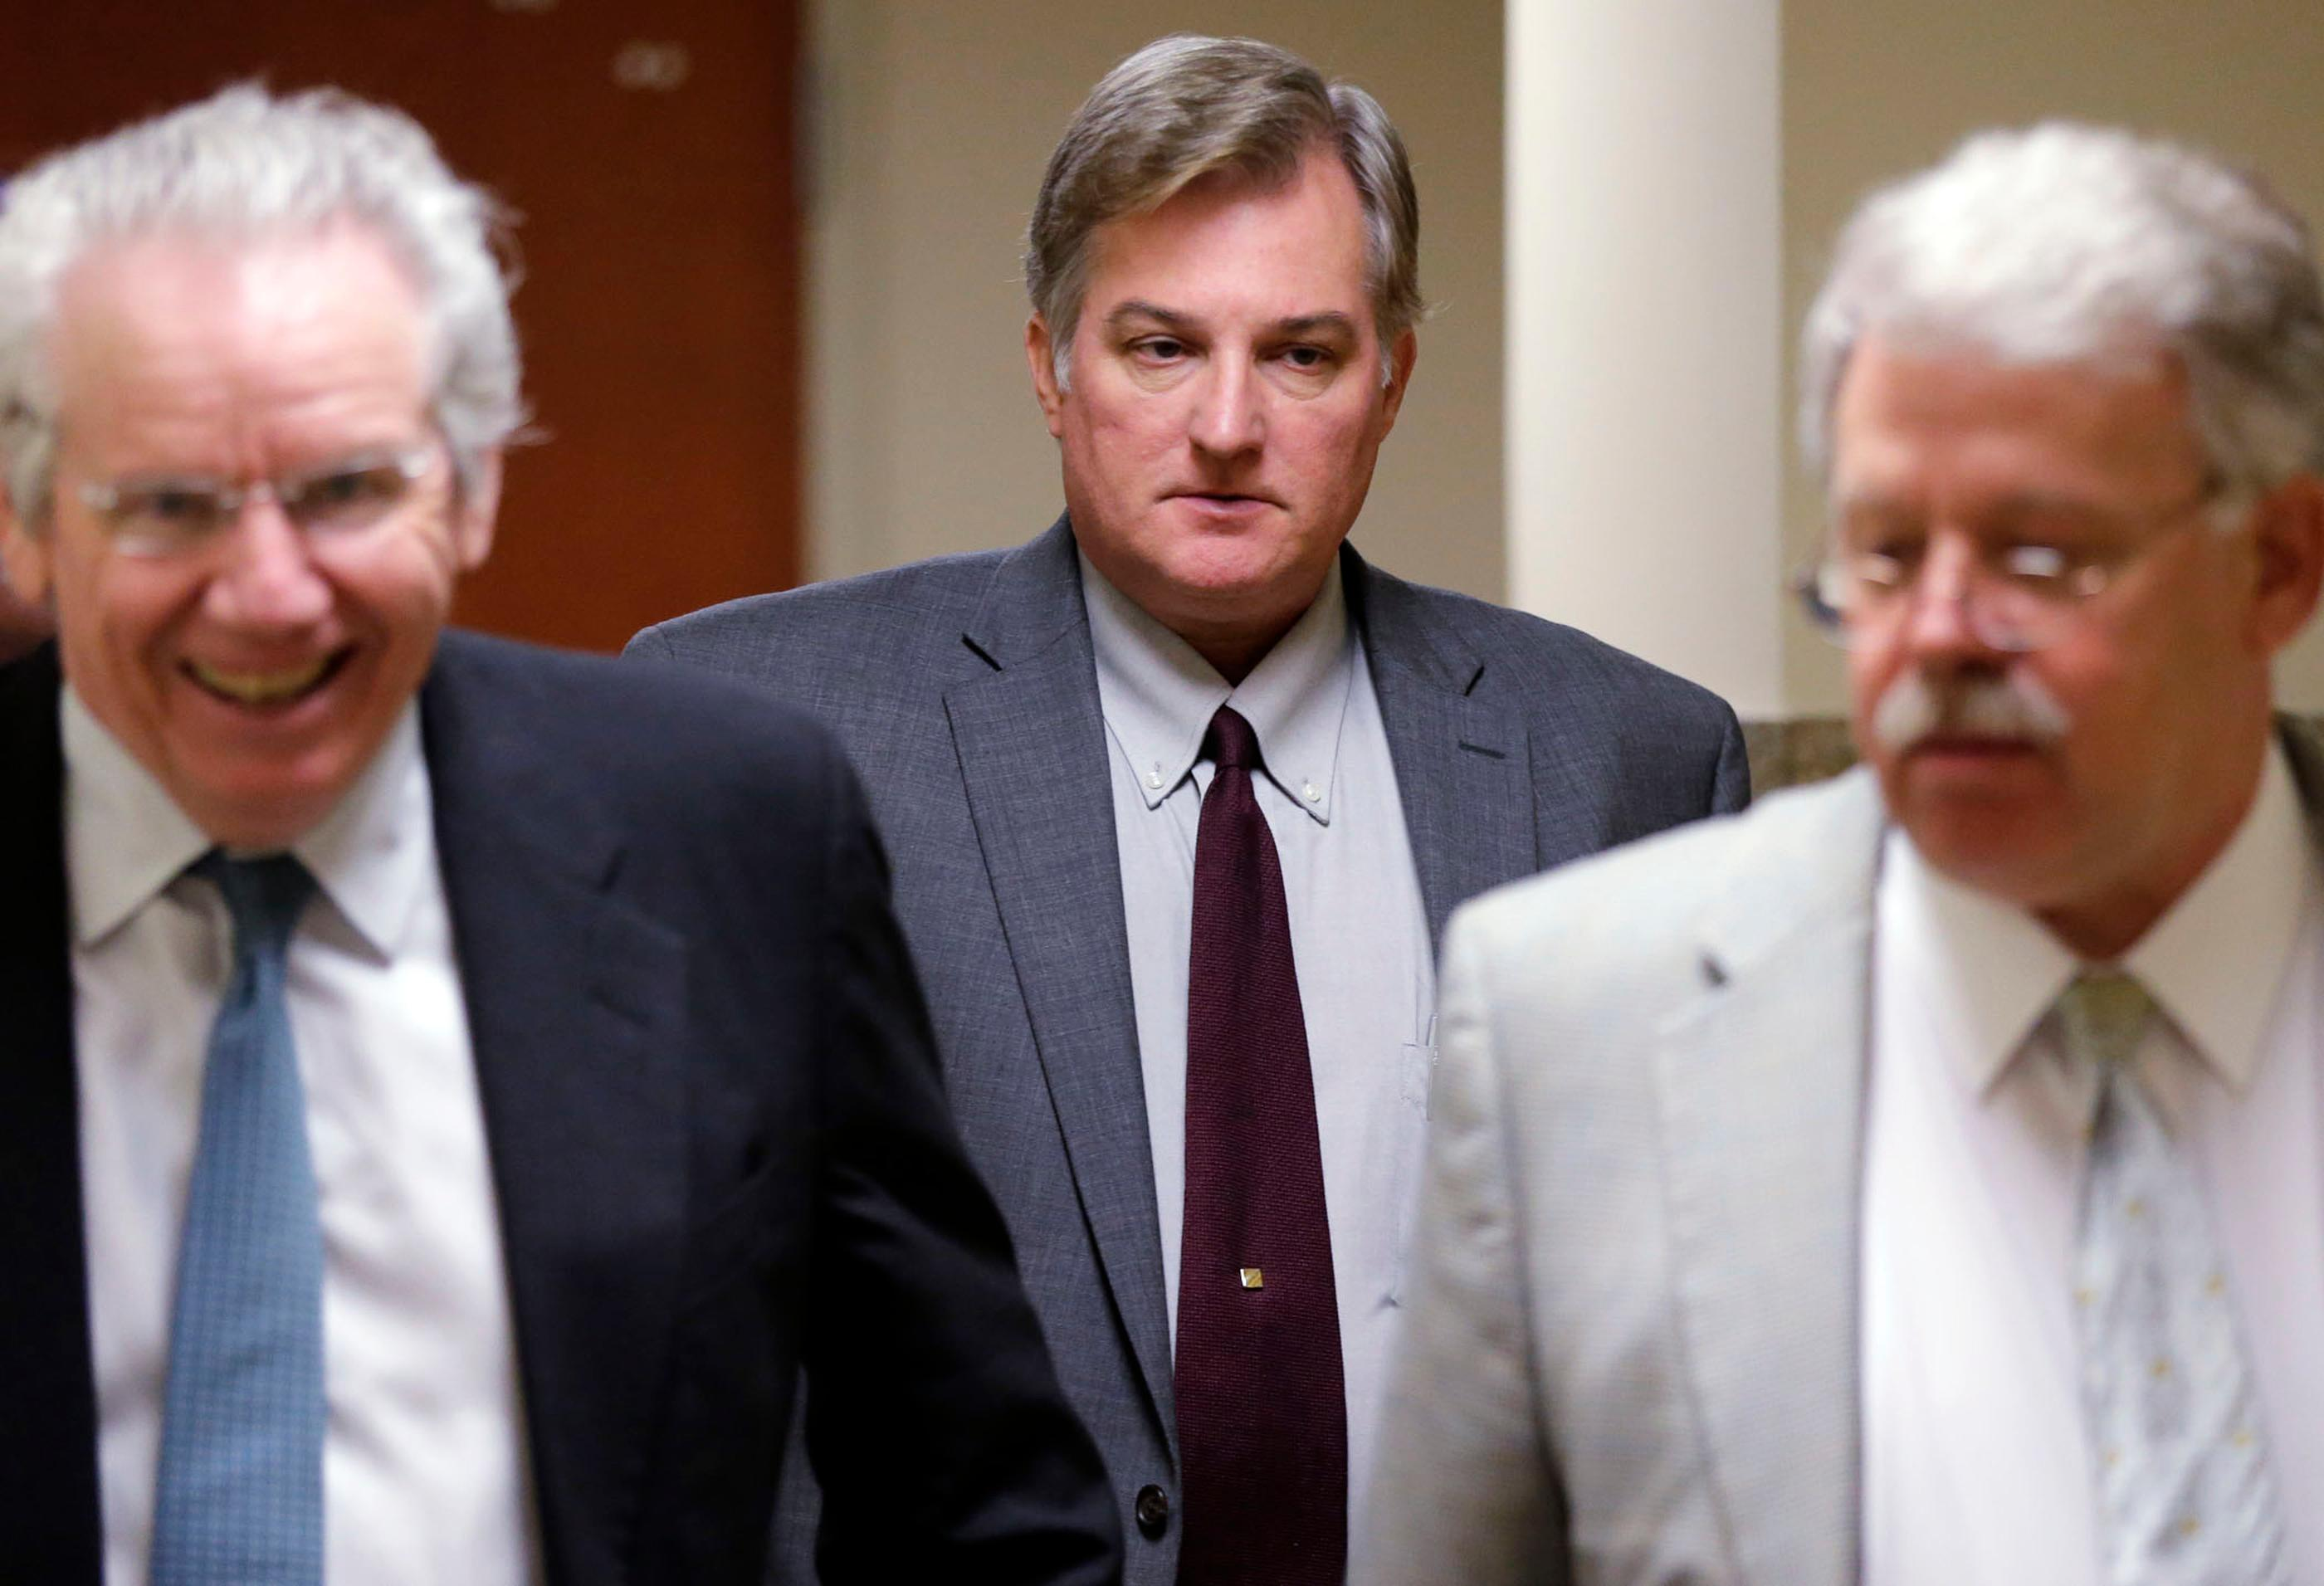 In this Thursday, June 29, 2017, photo, former Tulsa Police officer Shannon Kepler, center, exits the courtroom during his trial at the Tulsa County Courthouse, in Tulsa, Okla. Kepler, who accused of fatally shooting his daughter's new boyfriend in 2014, is on trial this week for the third time after jurors in the first two trials couldn't decide whether he was guilty of first-degree murder. (Cory Young/Tulsa World via AP)